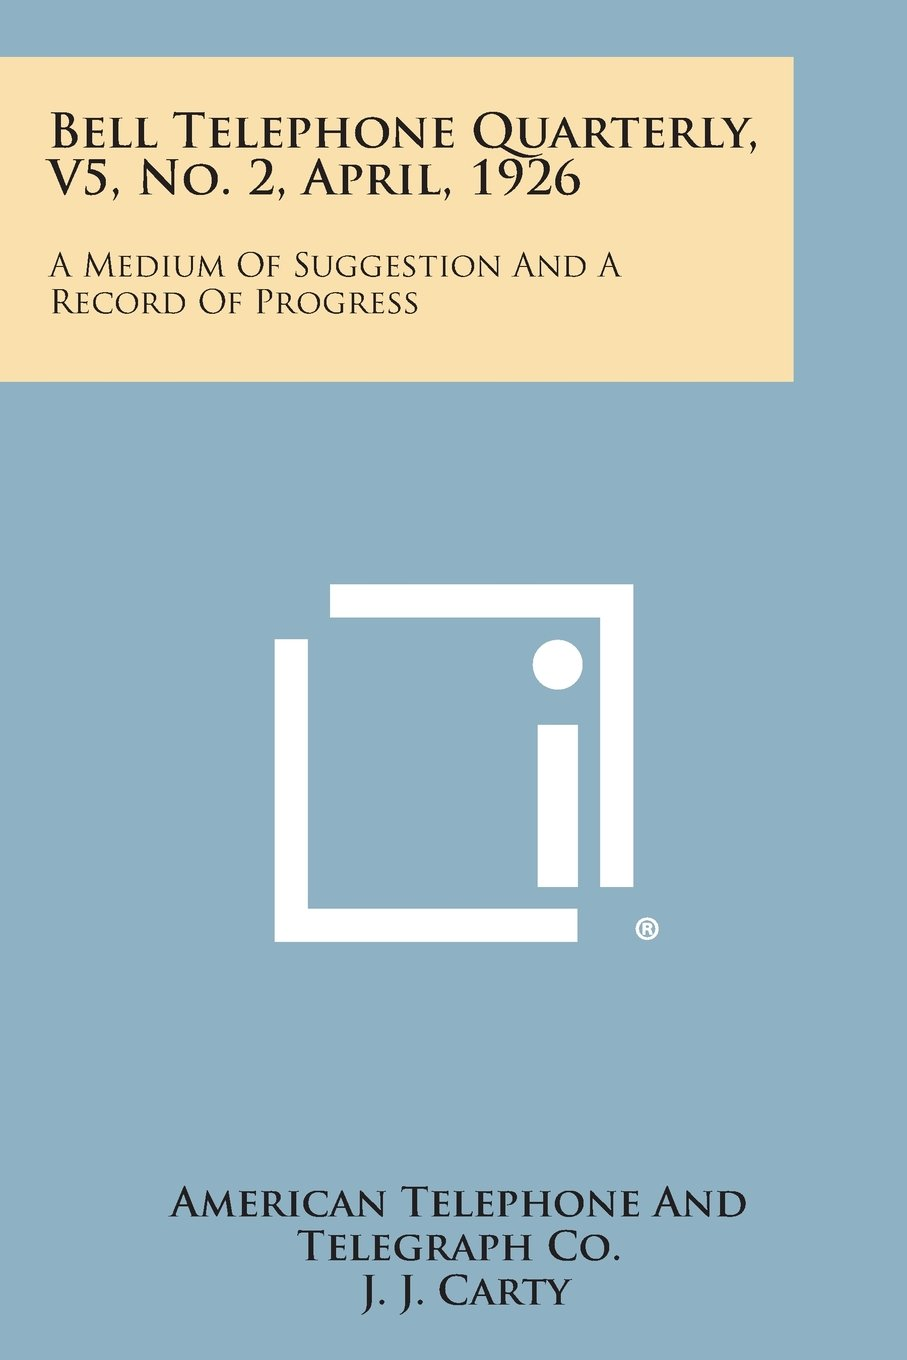 Download Bell Telephone Quarterly, V5, No. 2, April, 1926: A Medium of Suggestion and a Record of Progress ebook